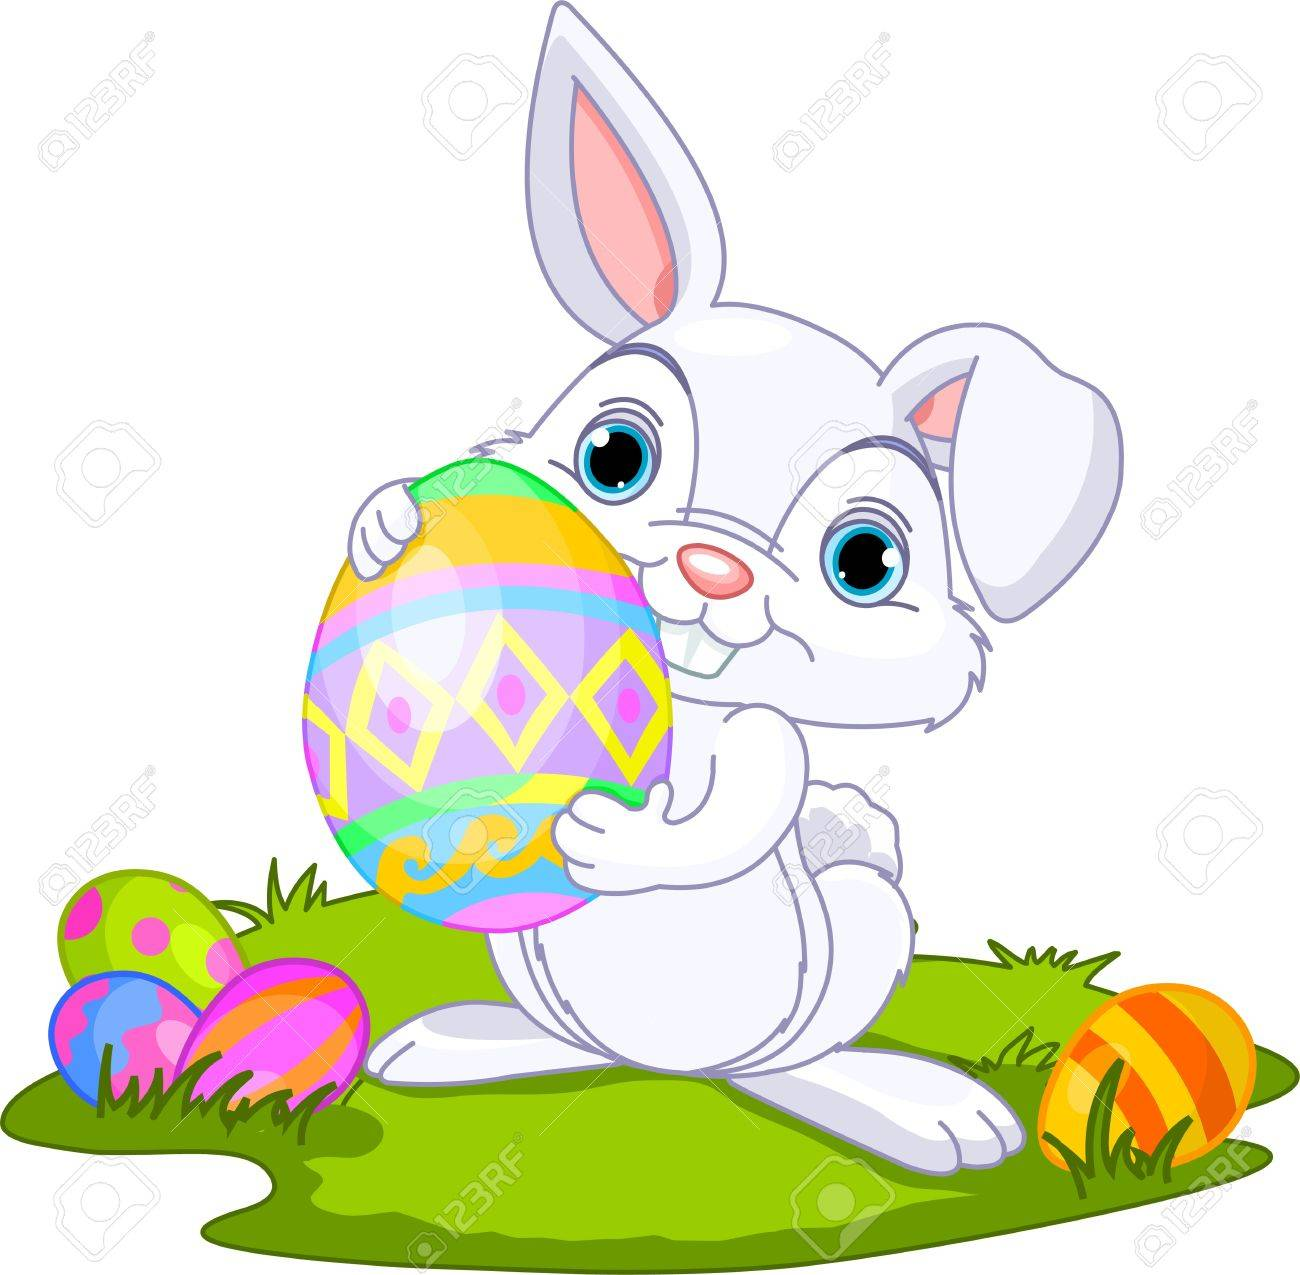 cute easter bunny carrying egg royalty free cliparts vectors and